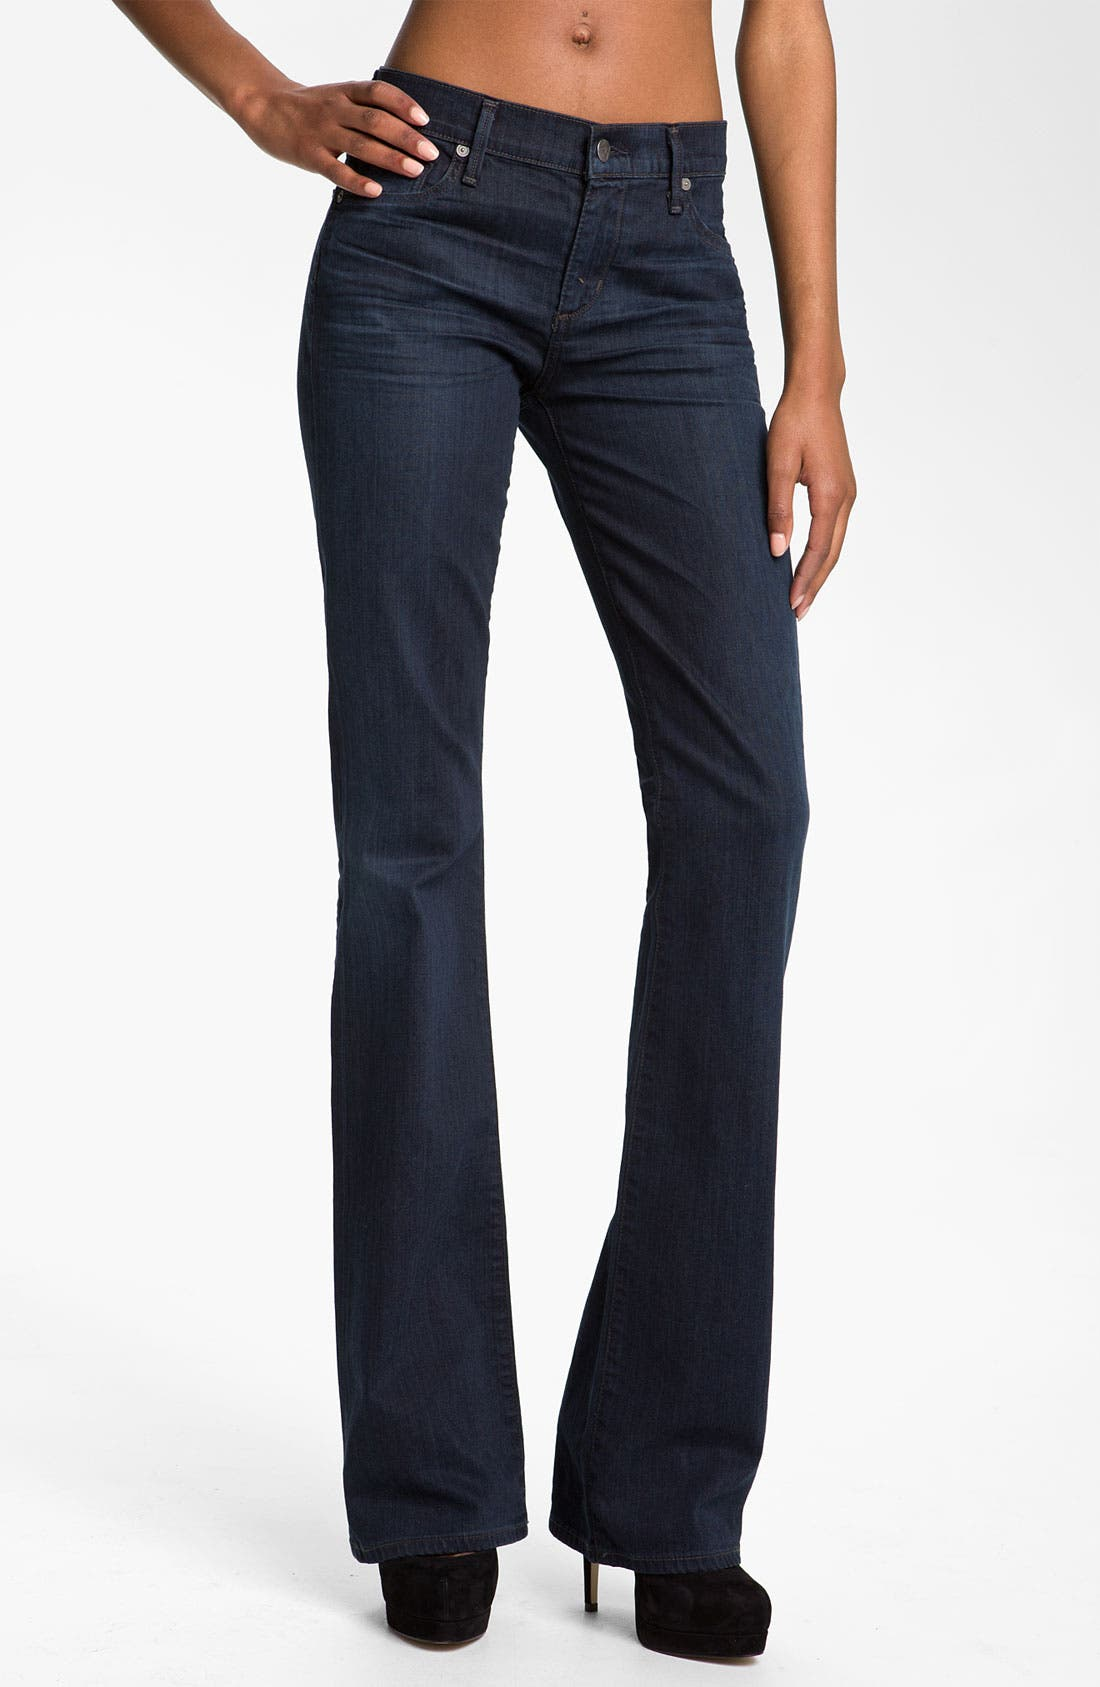 Main Image - Citizens of Humanity 'Amber' Mid Rise Bootcut Stretch Jeans (Dark Blue)